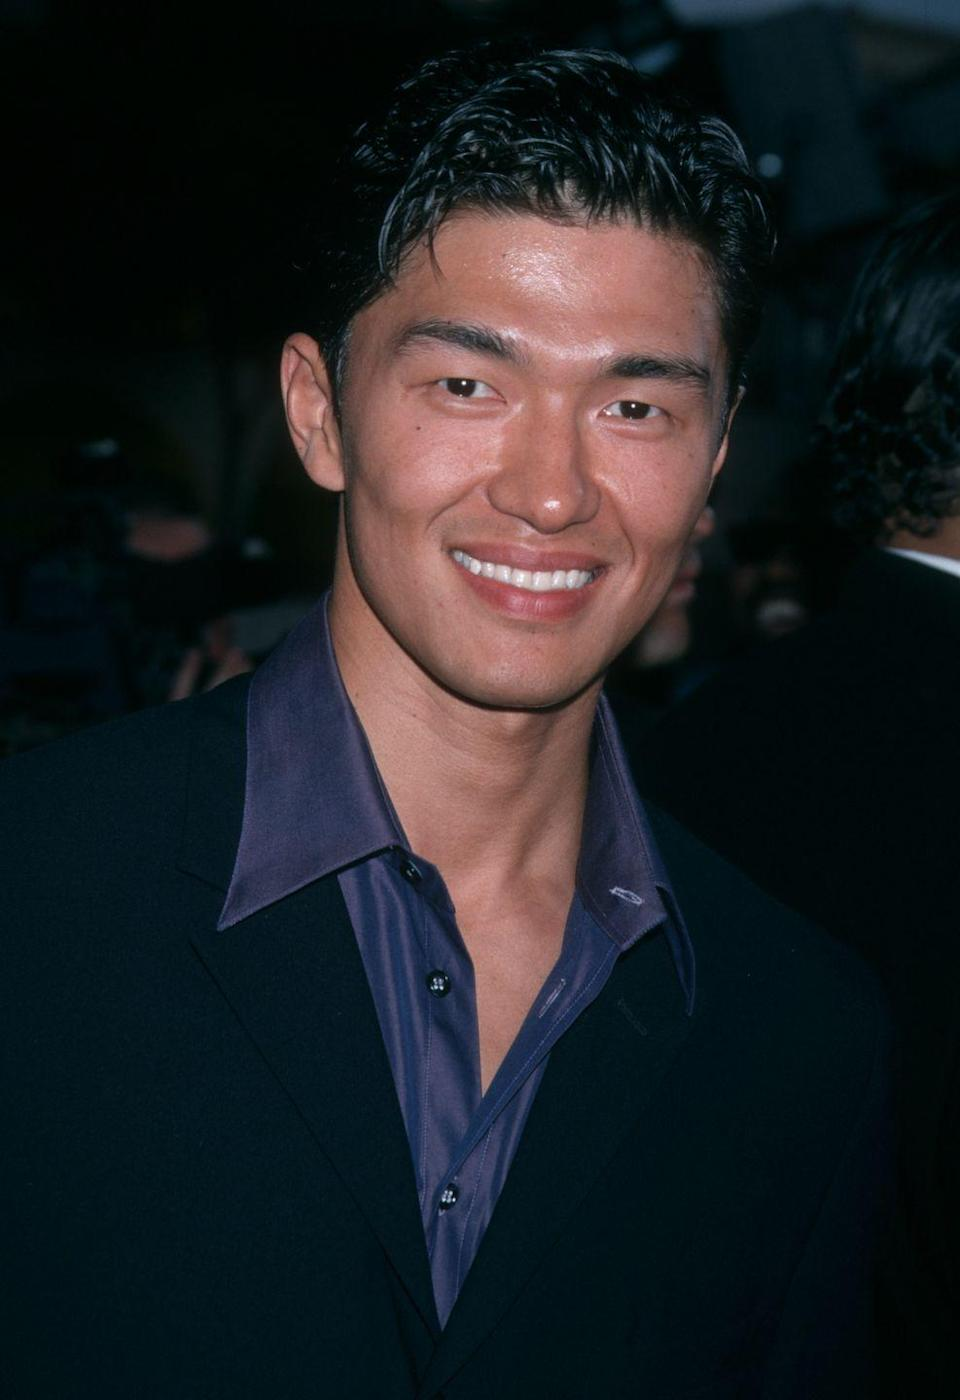 <p>You might remember Rick Yune as Johnny Tran from the first <em>Fast and Furious </em>film. The actor portrayed the leader of a Vietnamese gang and Vin Diesel's hated rival. </p>